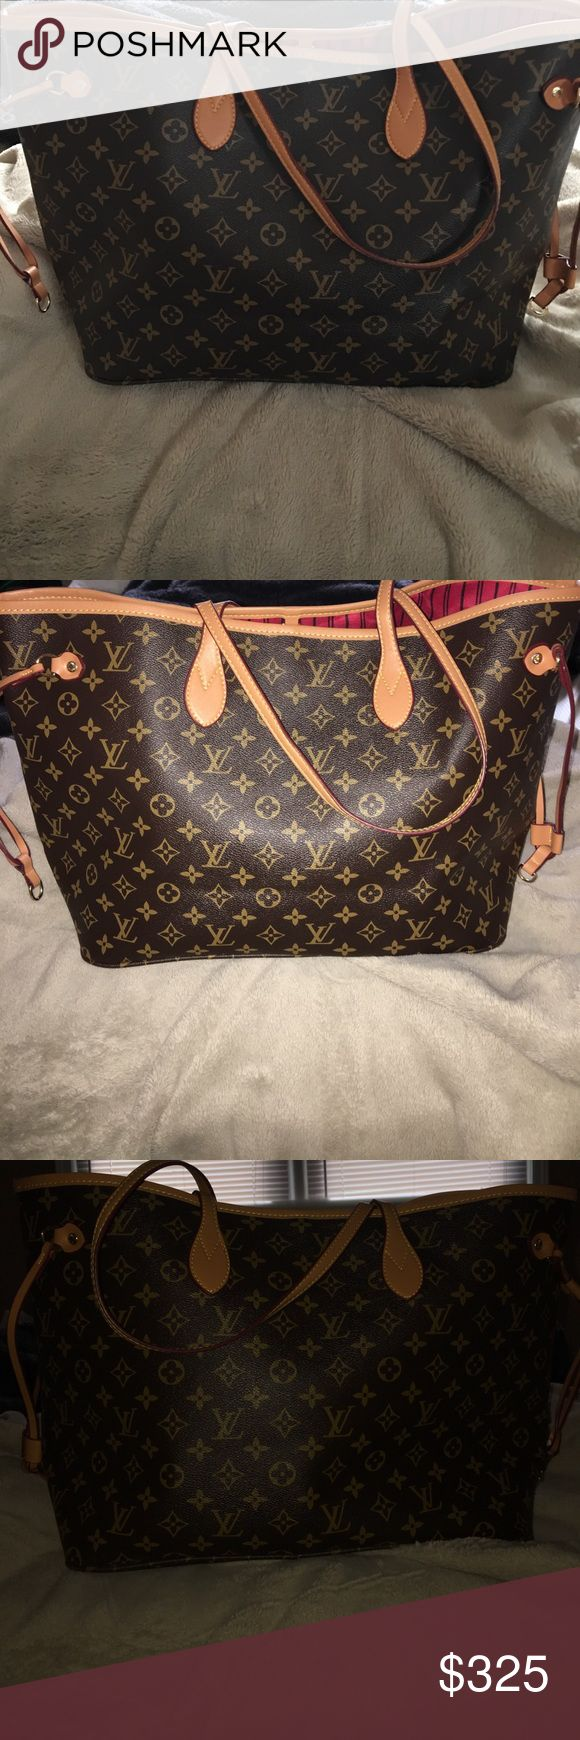 Louis Vuitton Neverfull GM purse 💜price•reflects💜 good condition! Please leave your email in the comments if you want more pictures of the entire purse inside and out! I will be happy to do so🙂 beautiful Louis Vuitton Neverfull GM purse. Used a few times! Louis Vuitton Bags Totes